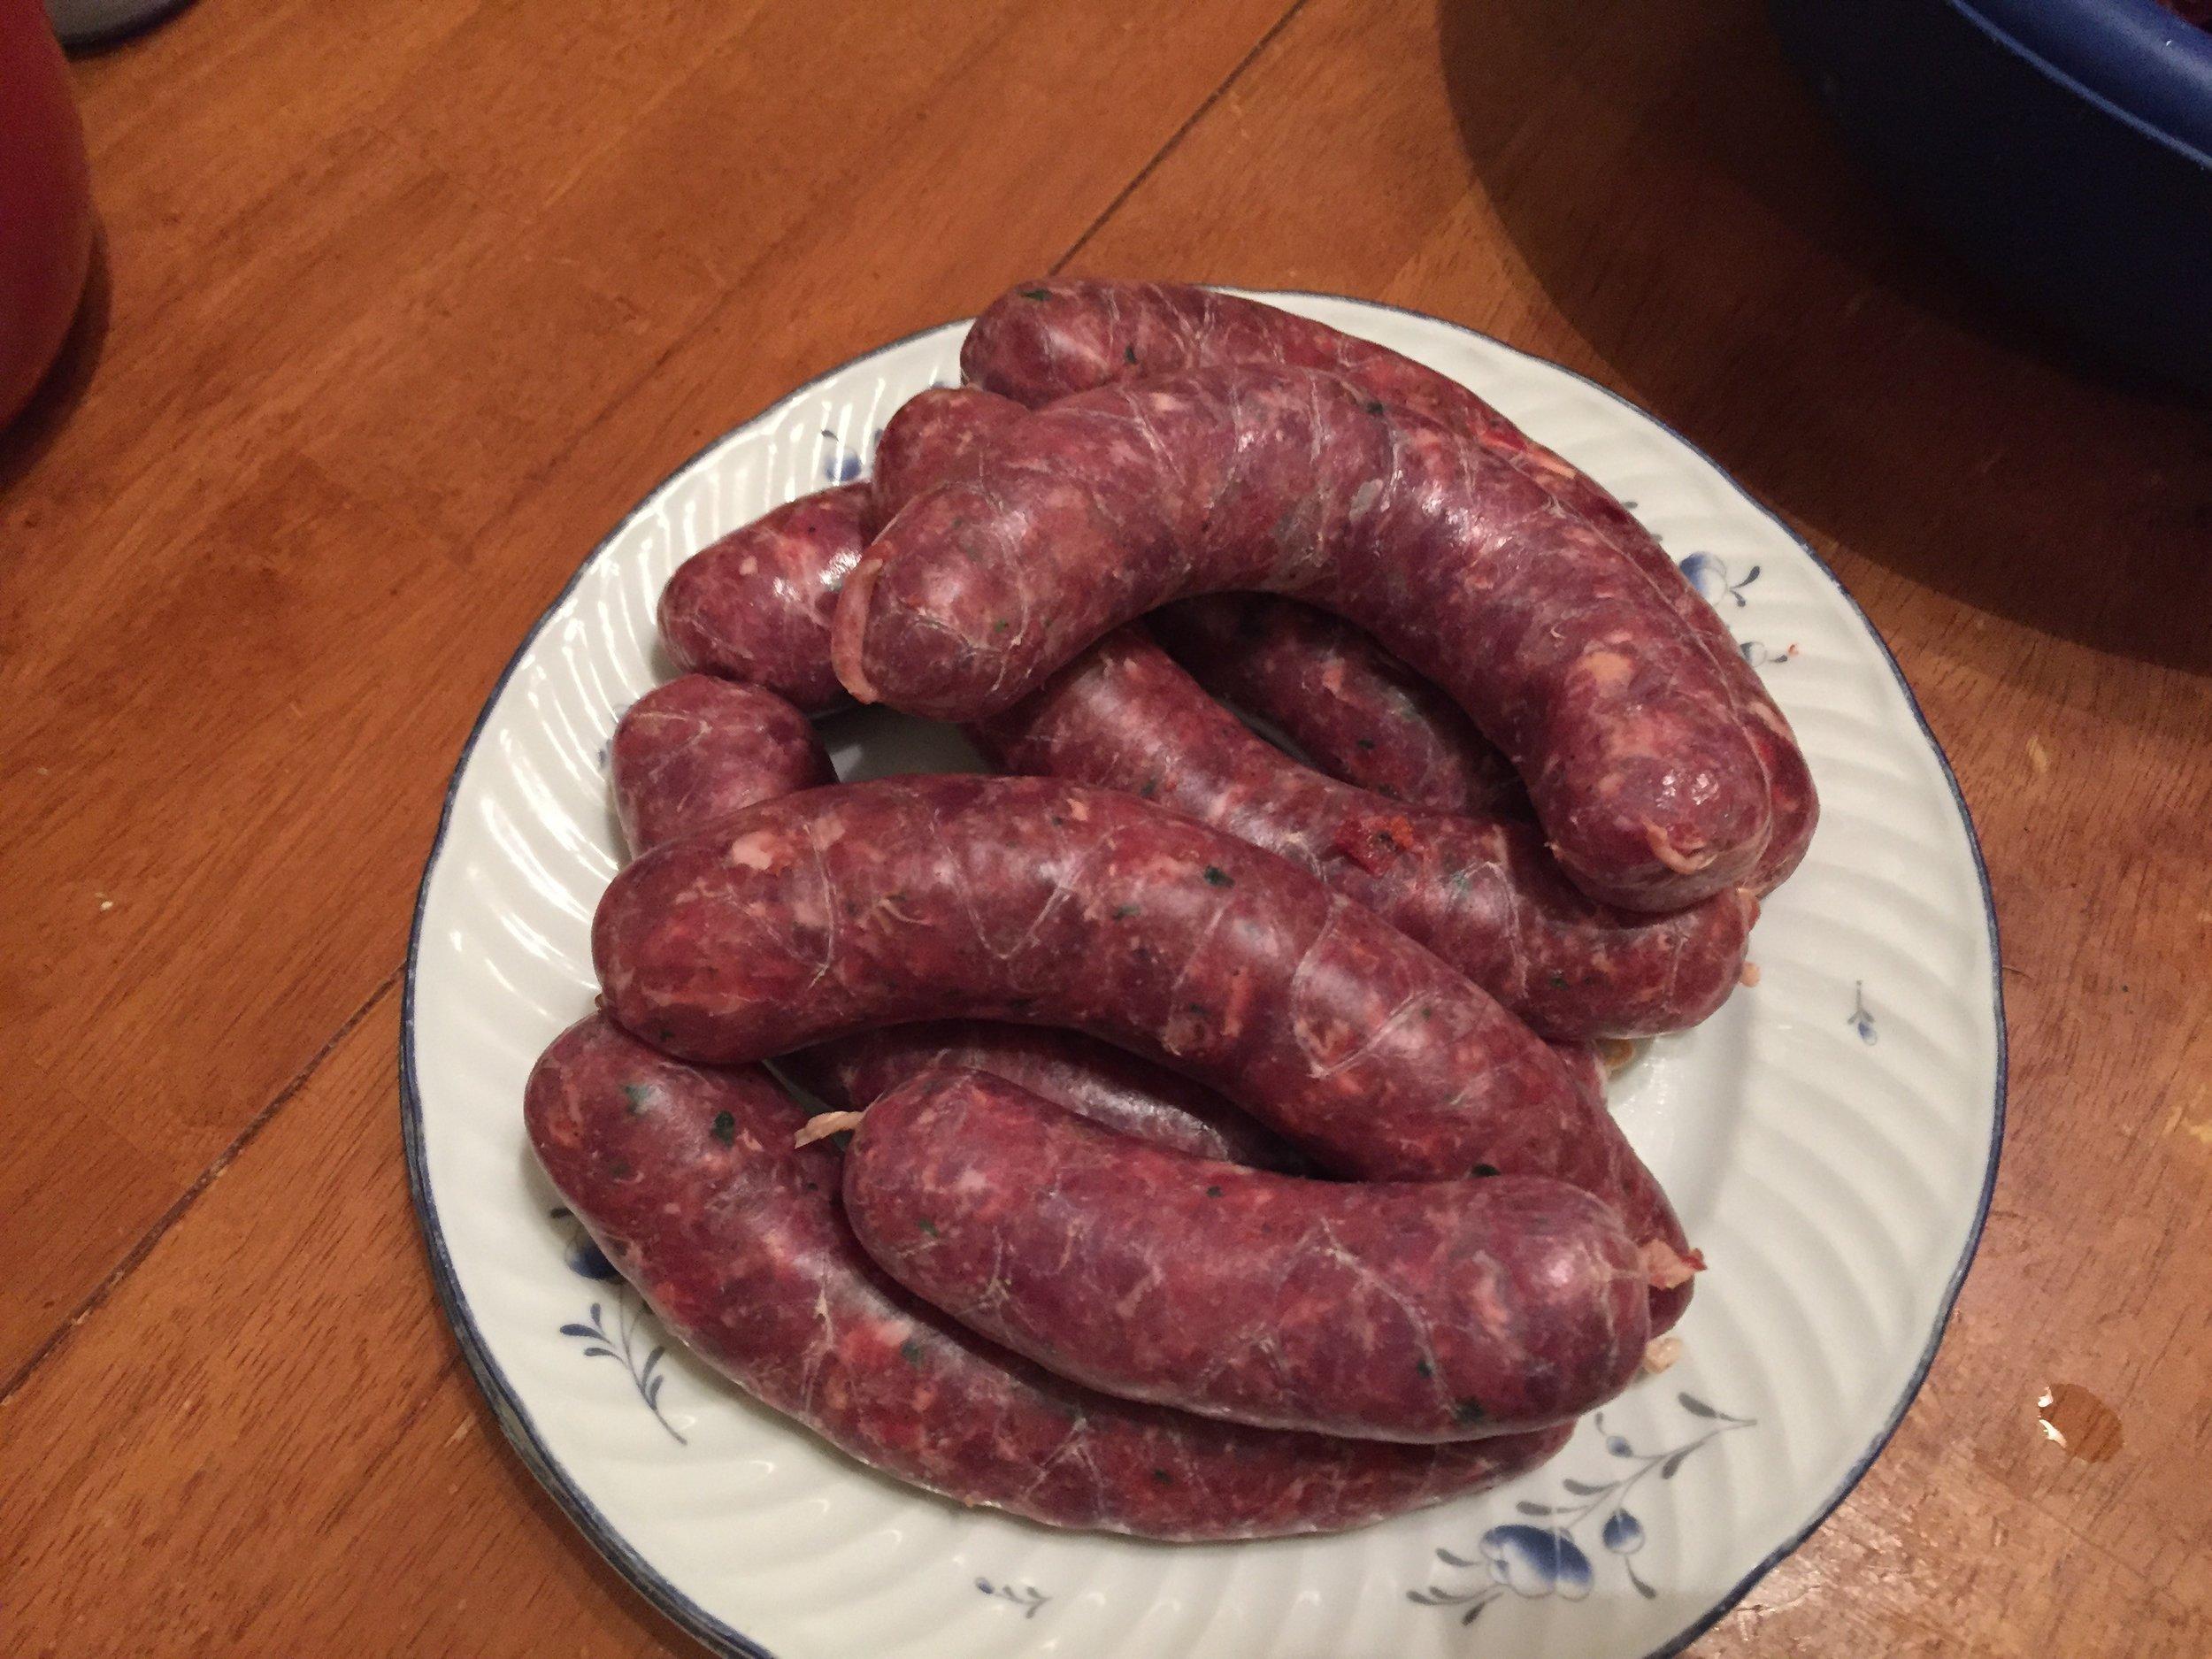 Freshly made Jackrabbit breakfast sausages